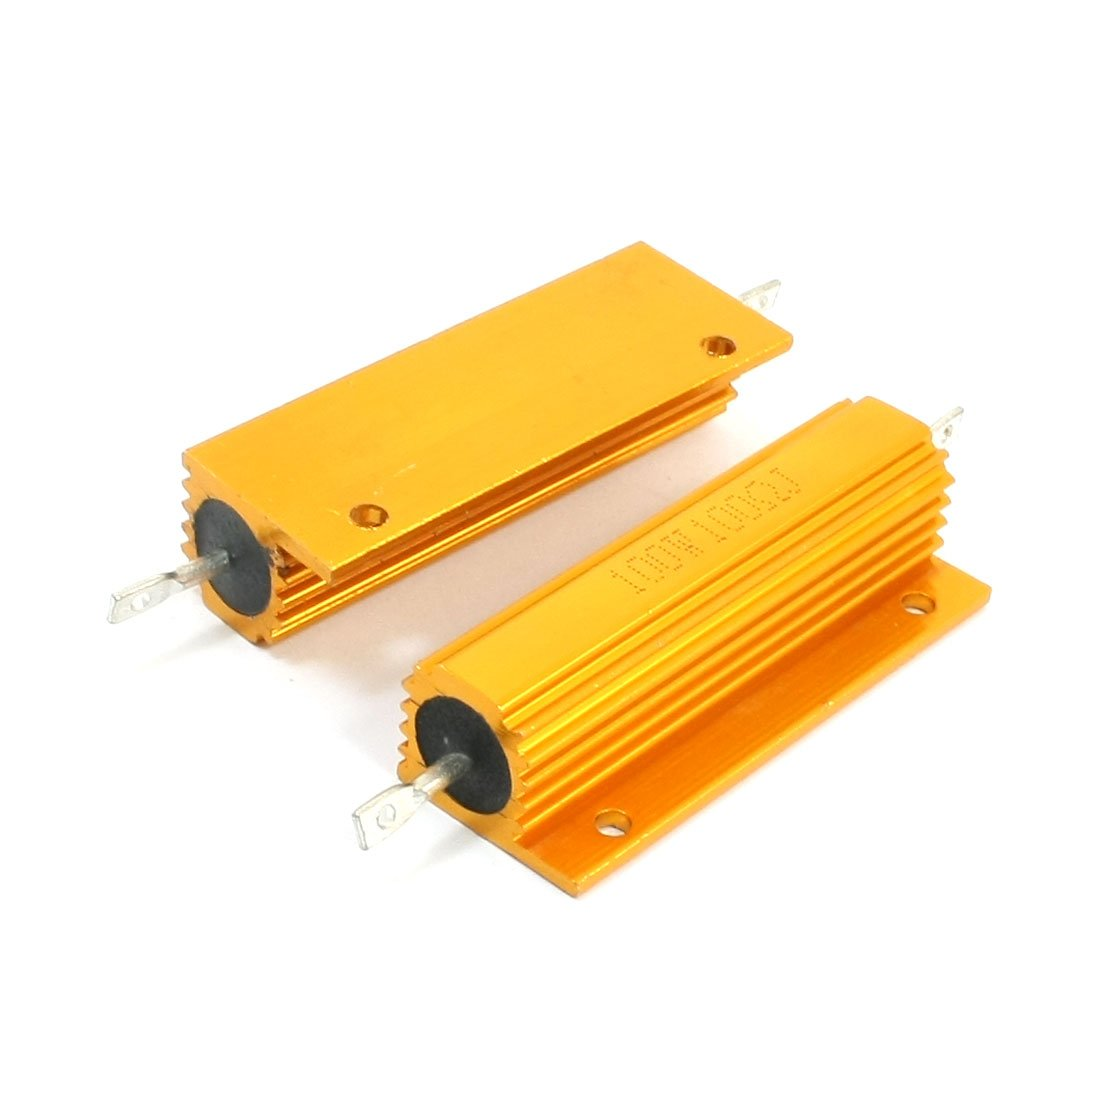 Uxcell a14012100ux0143 2 Piece Chassis Mounted Aluminum Casing Housed Clad Resistors, 100W 100Ohm by uxcell